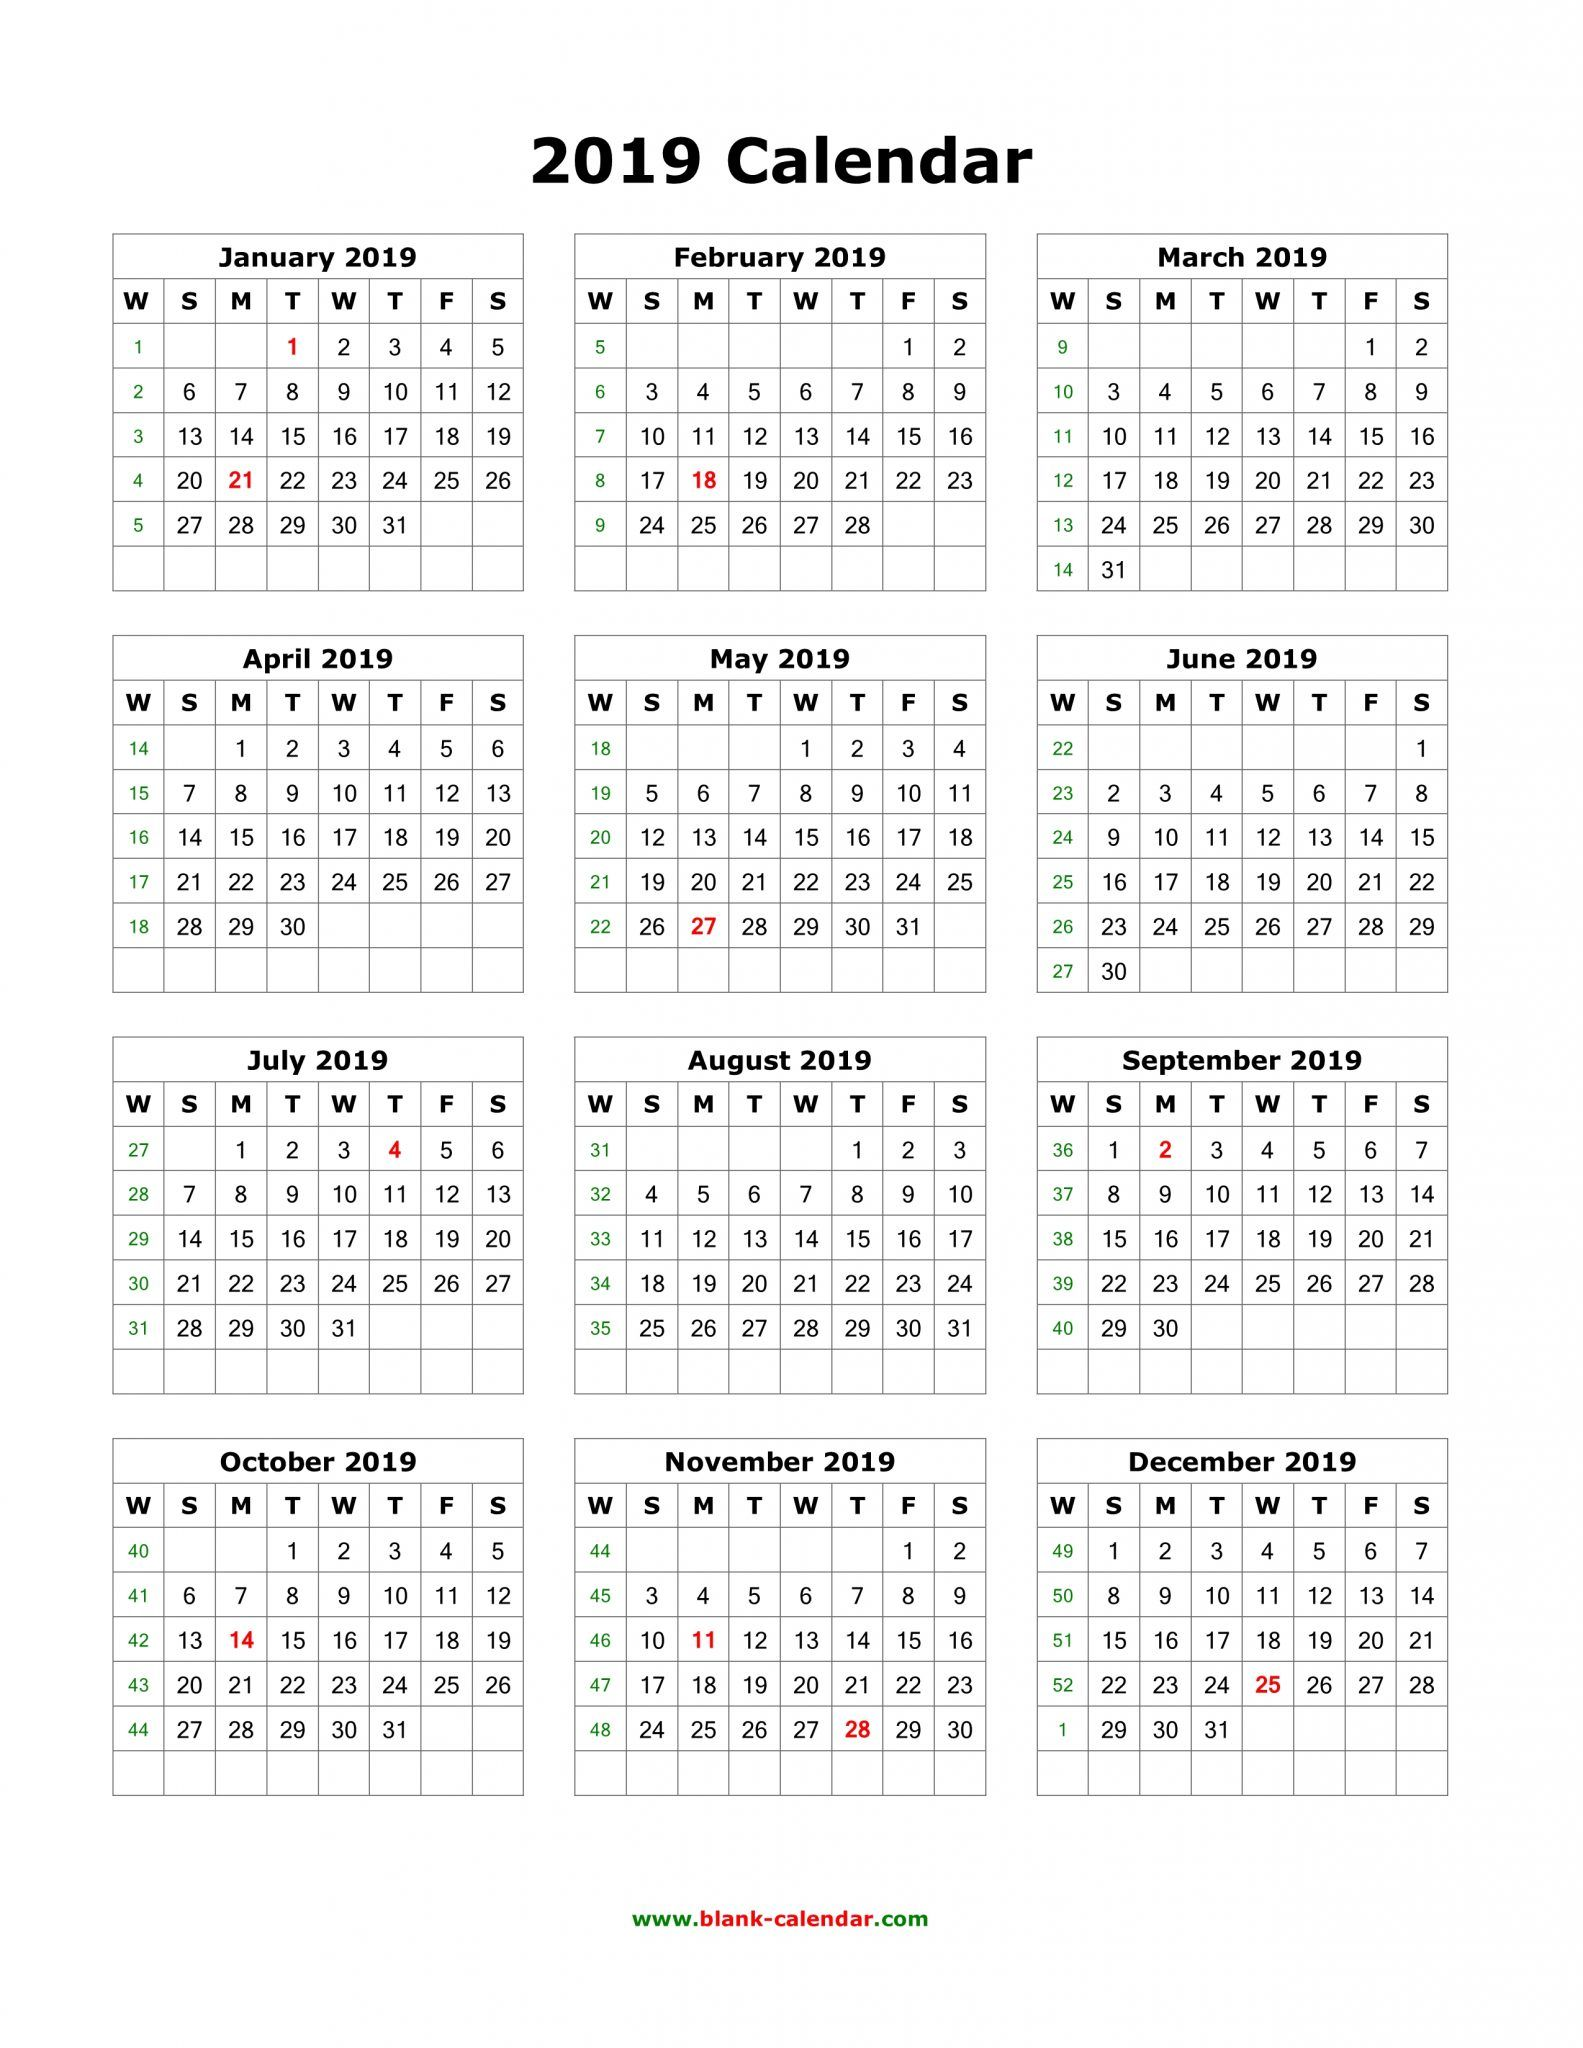 Download Blank 2019 Calendar Templates 12 Month Calendar In One